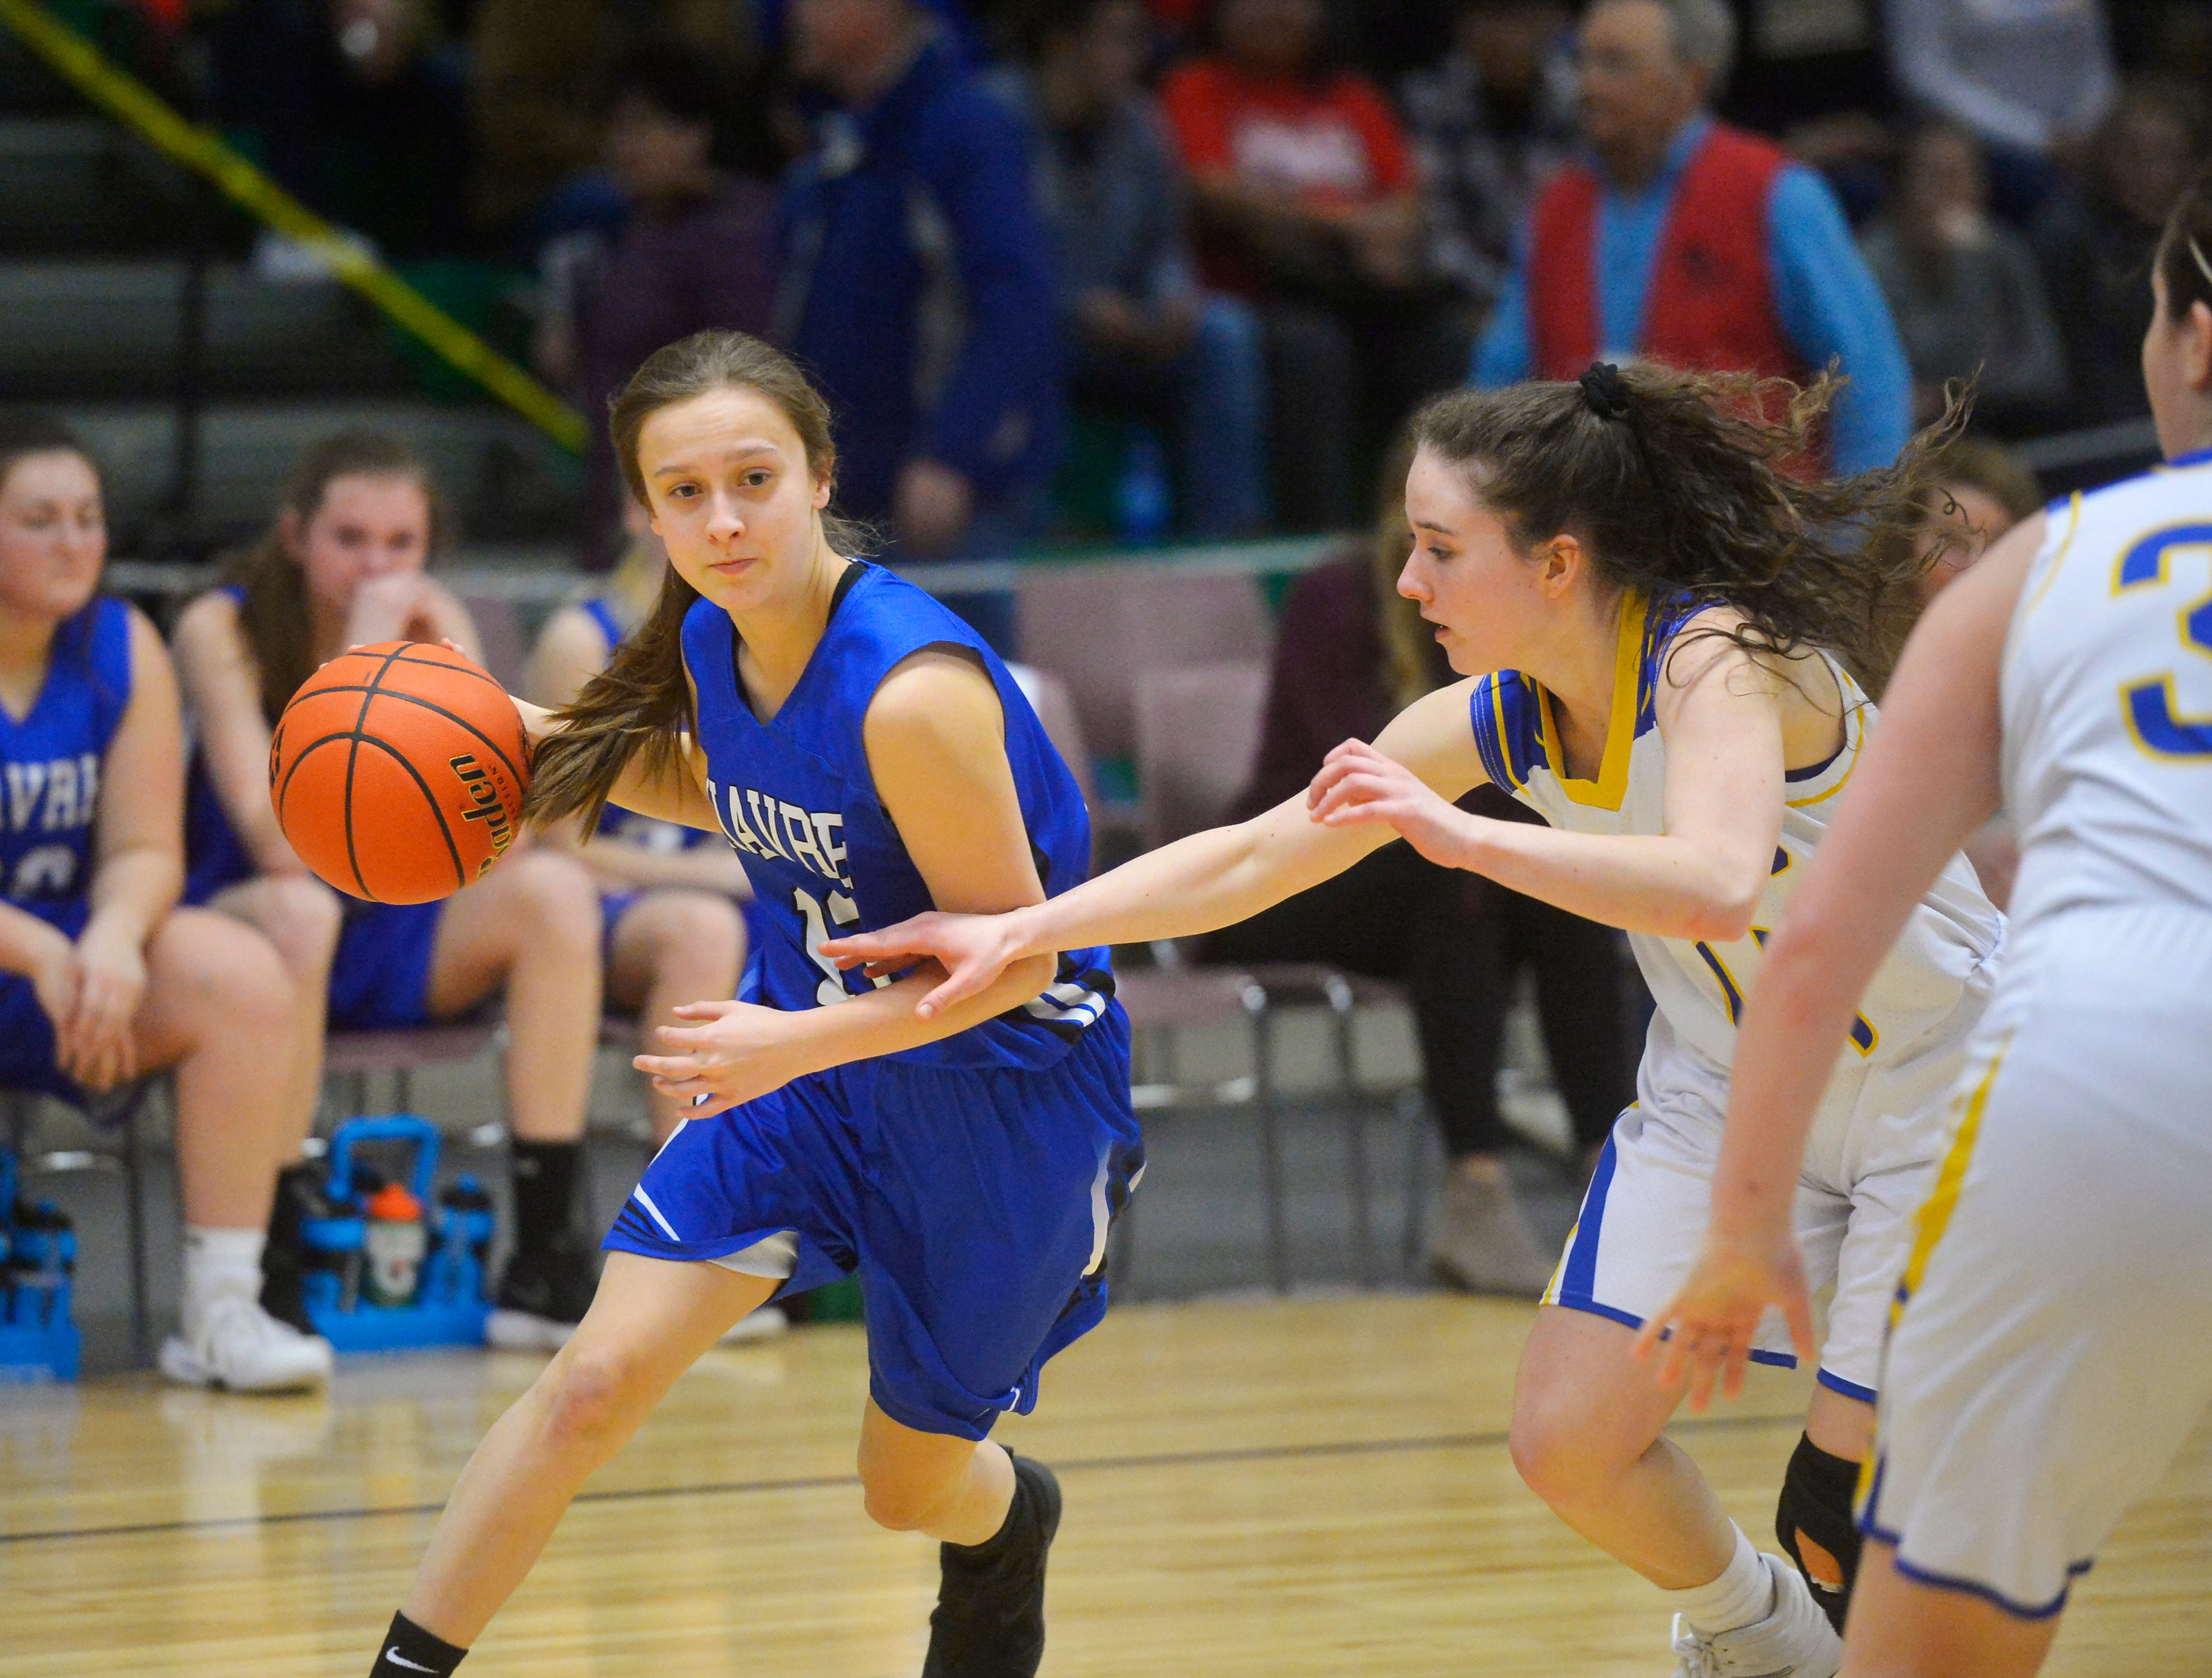 Havre's Kylie Walker drives to the basket as Libby's Emma Gruber defends during the Class A State Basketball Tournament in the Four Seasons Arena, Thursday.